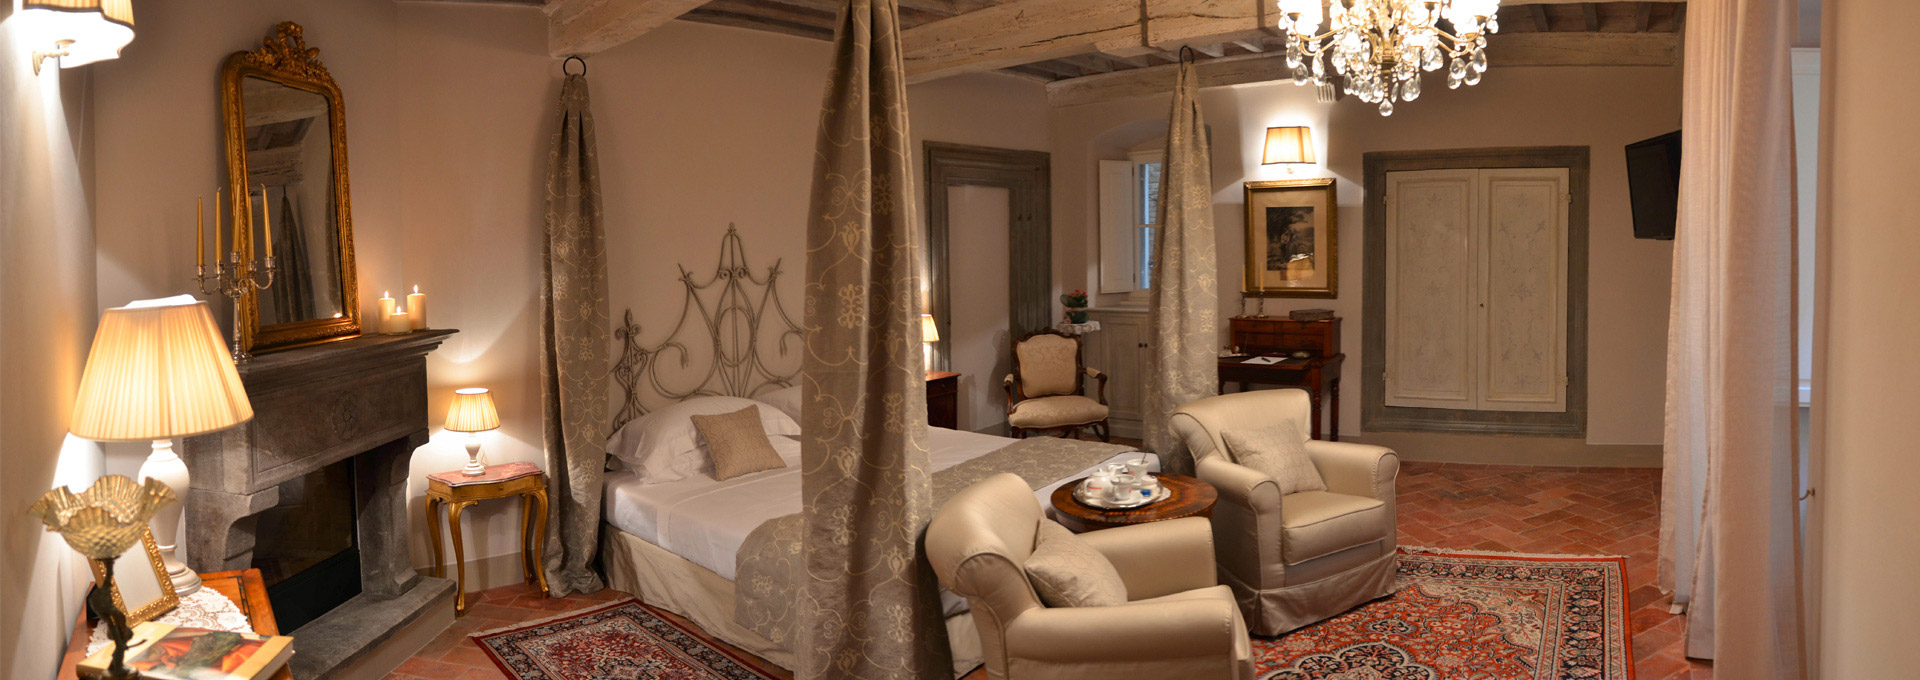 Luxury rooms bed and breakfast in cortona tuscany italy for Italy b b